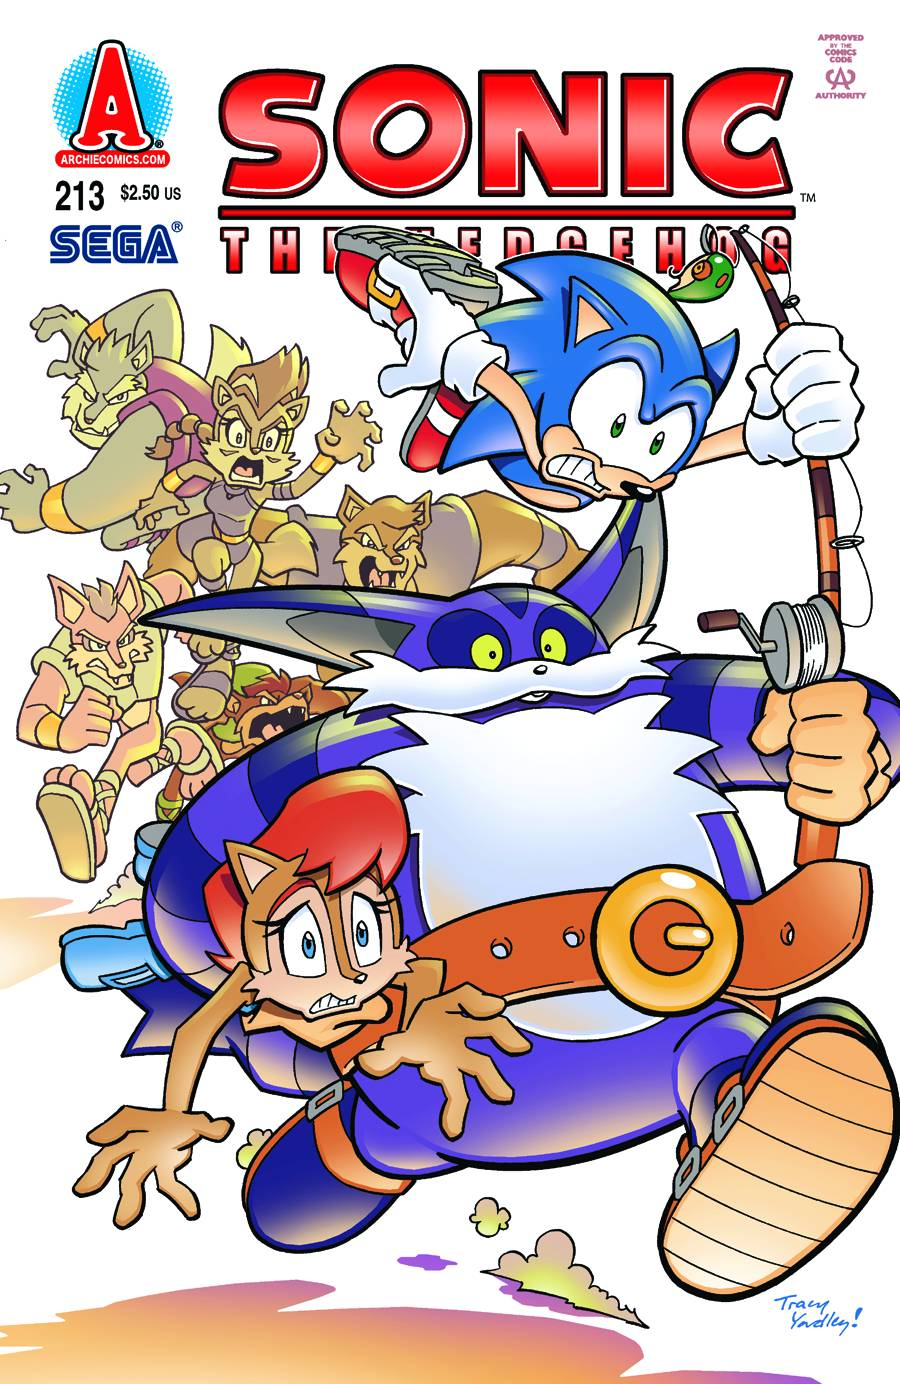 Archie Sonic the Hedgehog Issue 213